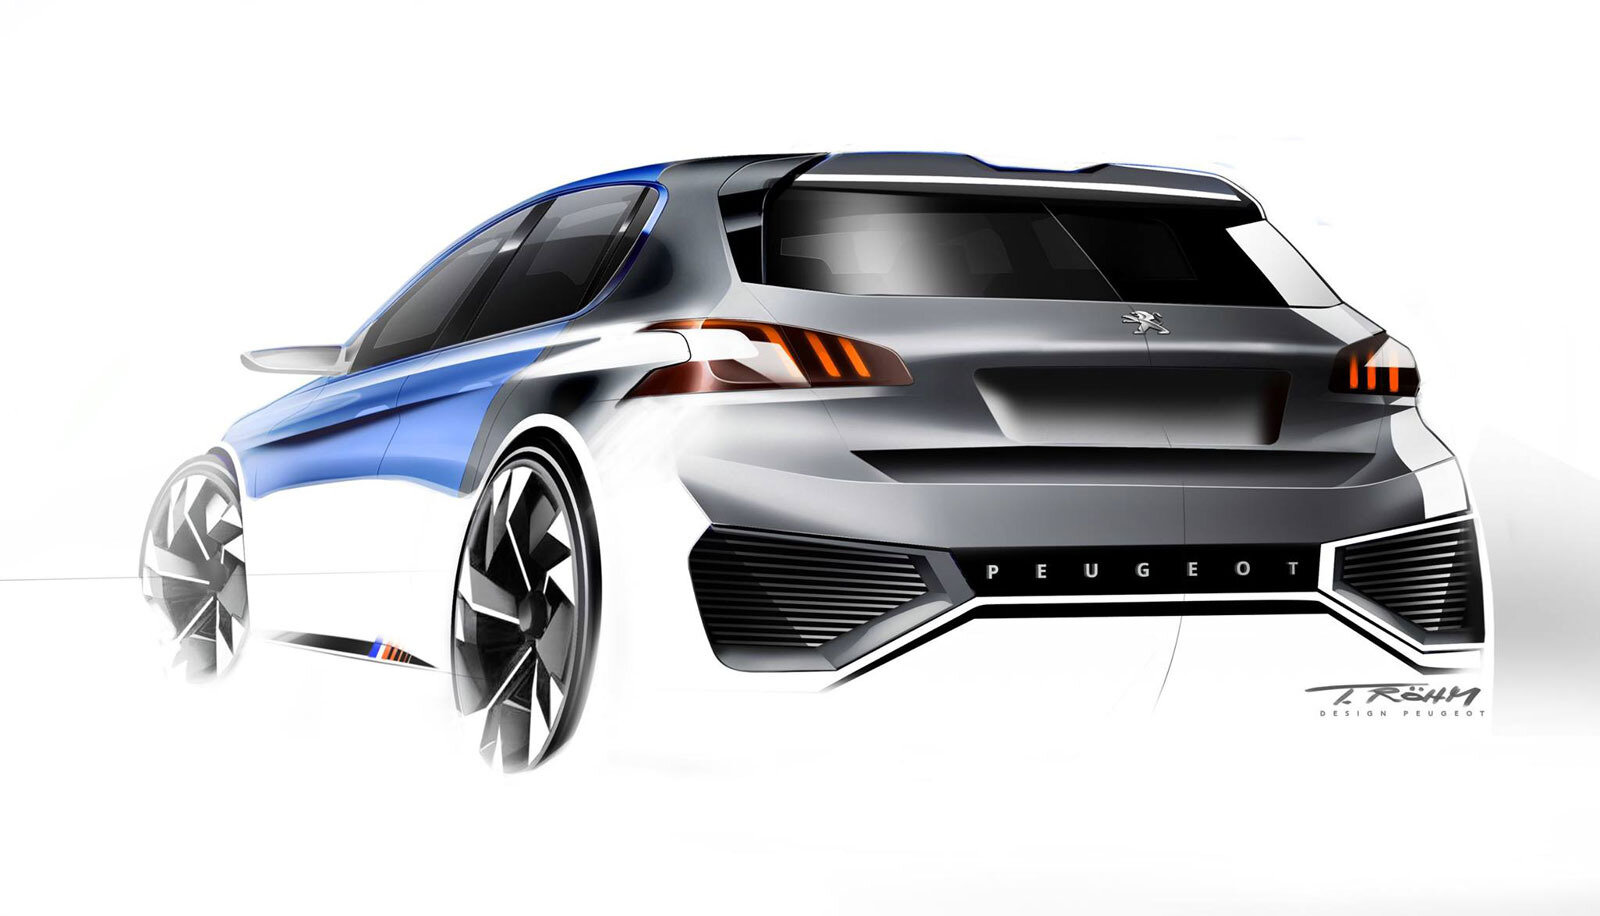 Peugeot 308 r hybrid concept design sketch by thomas rohm for Exterior car design